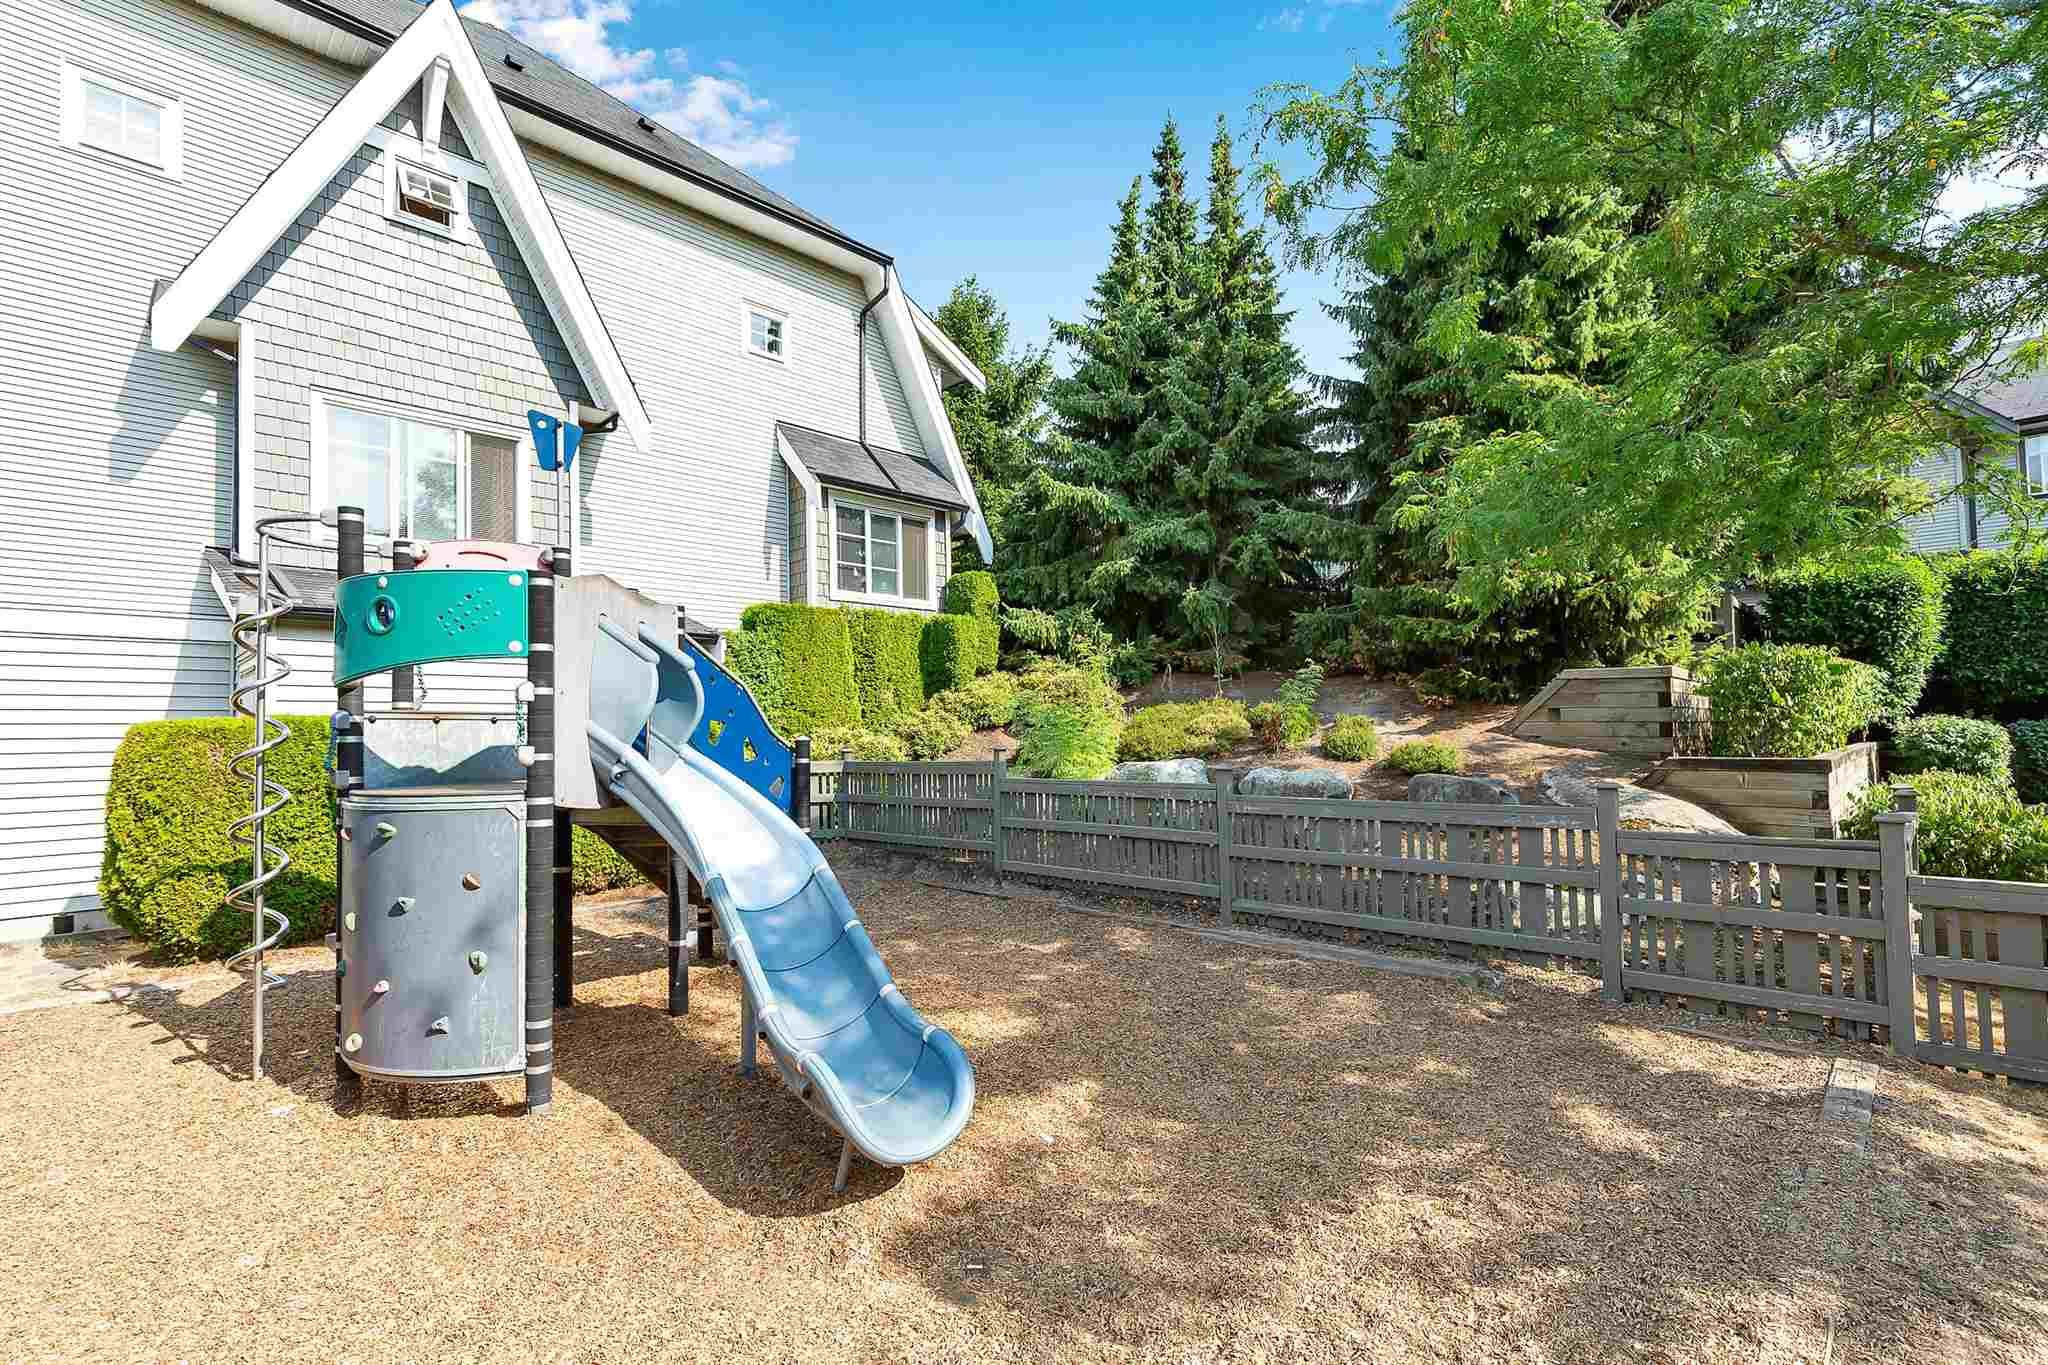 """Photo 31: Photos: 9 15871 85 Avenue in Surrey: Fleetwood Tynehead Townhouse for sale in """"Huckleberry"""" : MLS®# R2606668"""